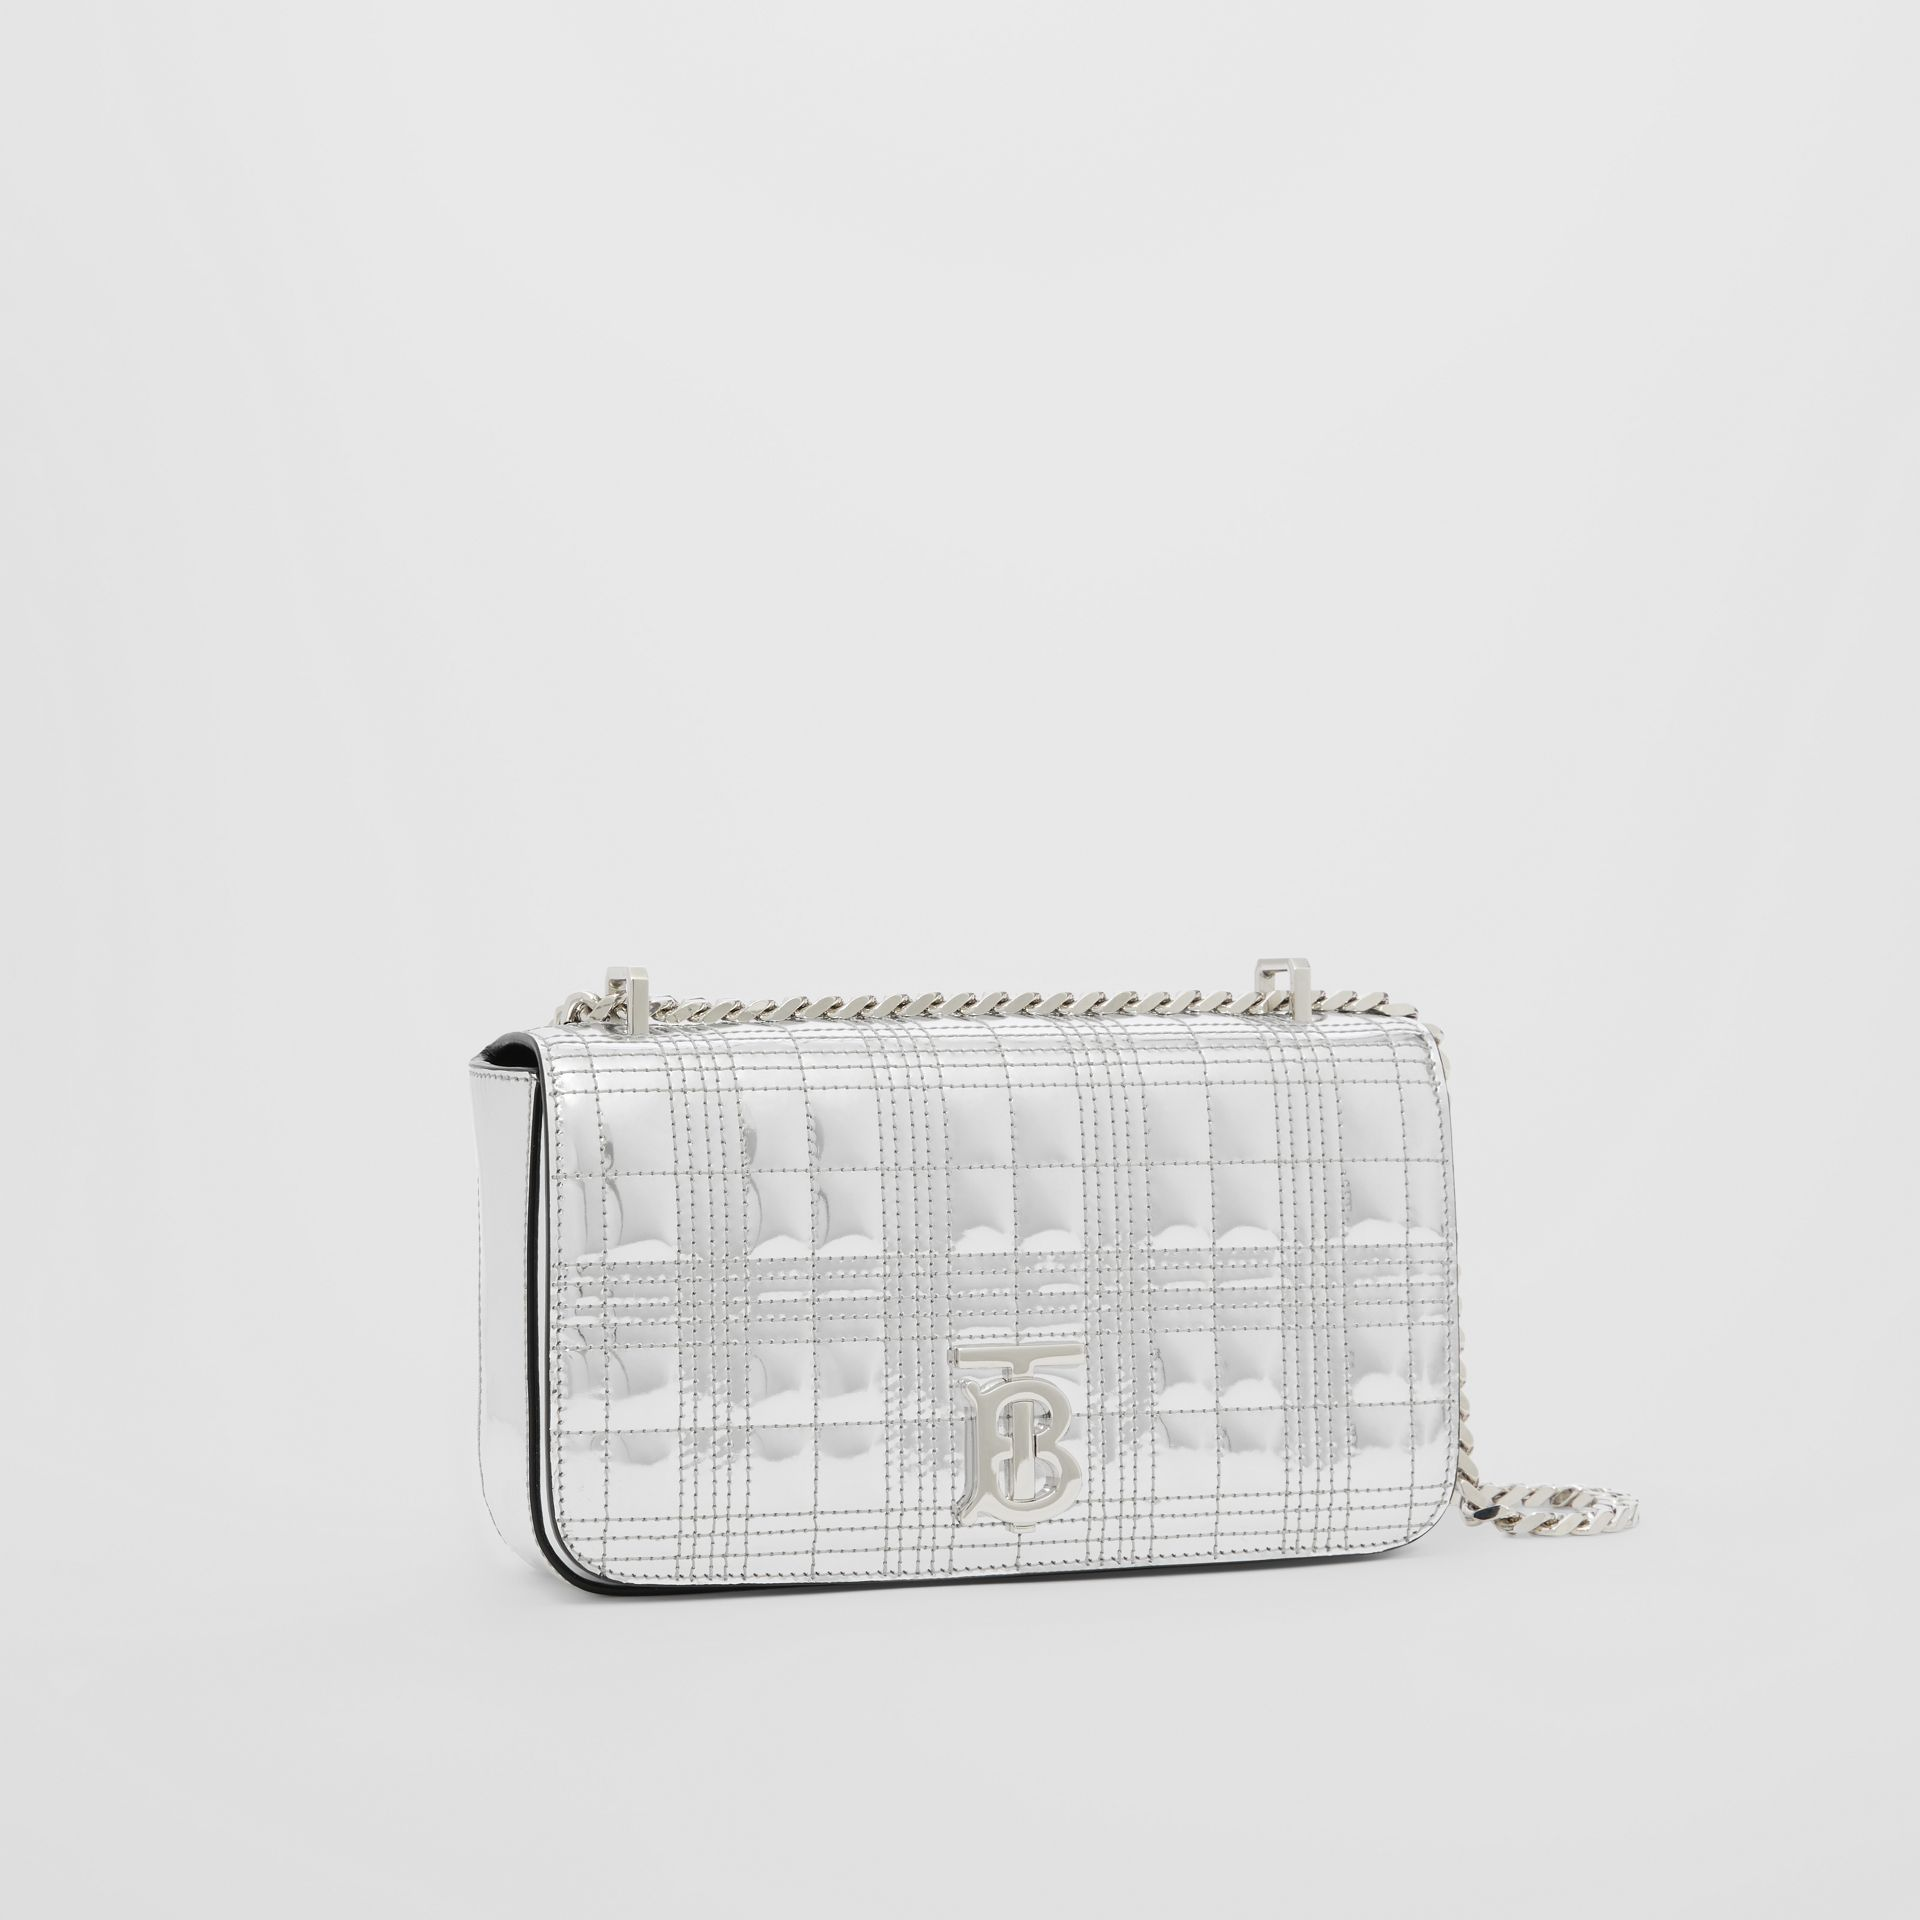 Small Quilted Metallic Leather Lola Bag in Silver - Women | Burberry - gallery image 4